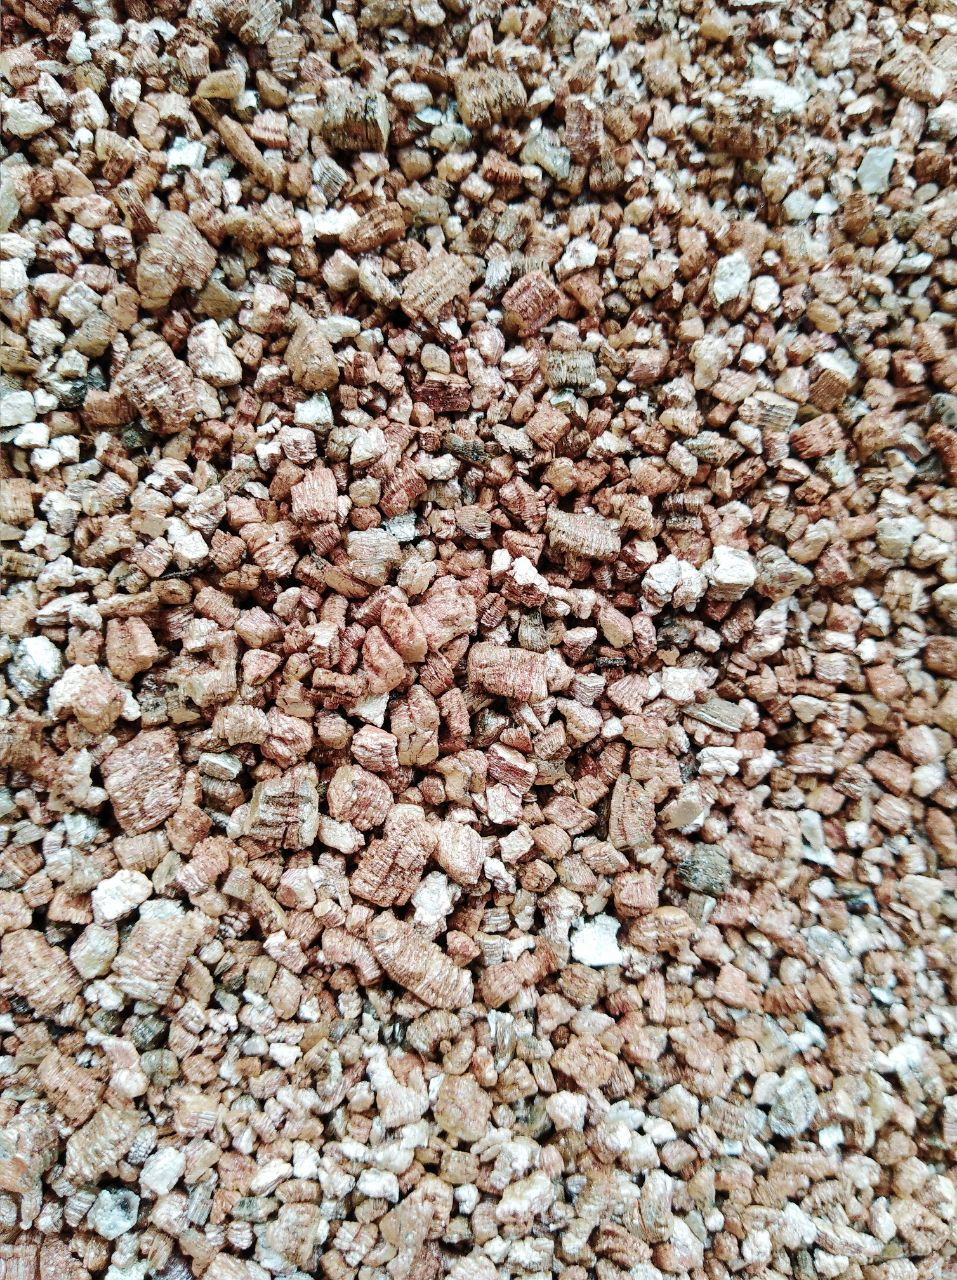 Vermiculite | Increases Water Retention for Soil | Singapore Farm